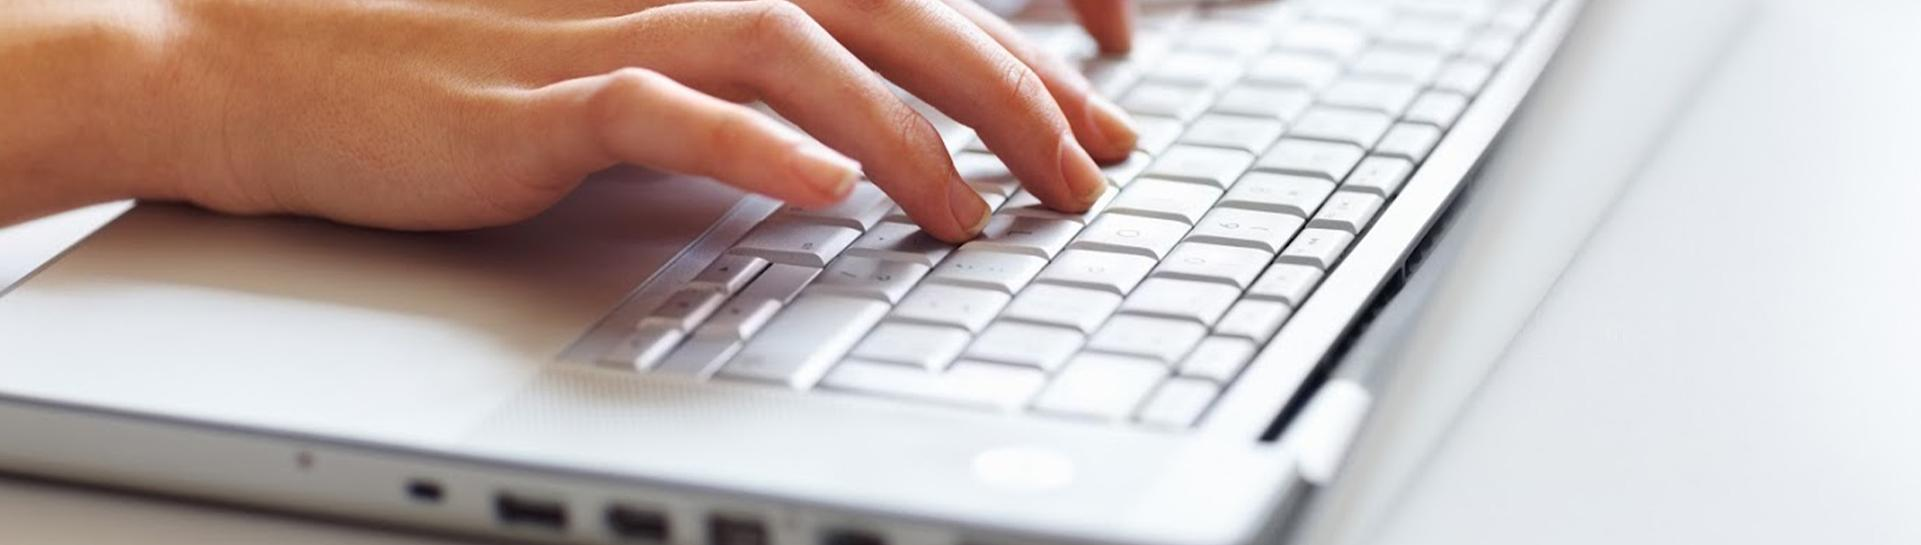 Online Applications for Students